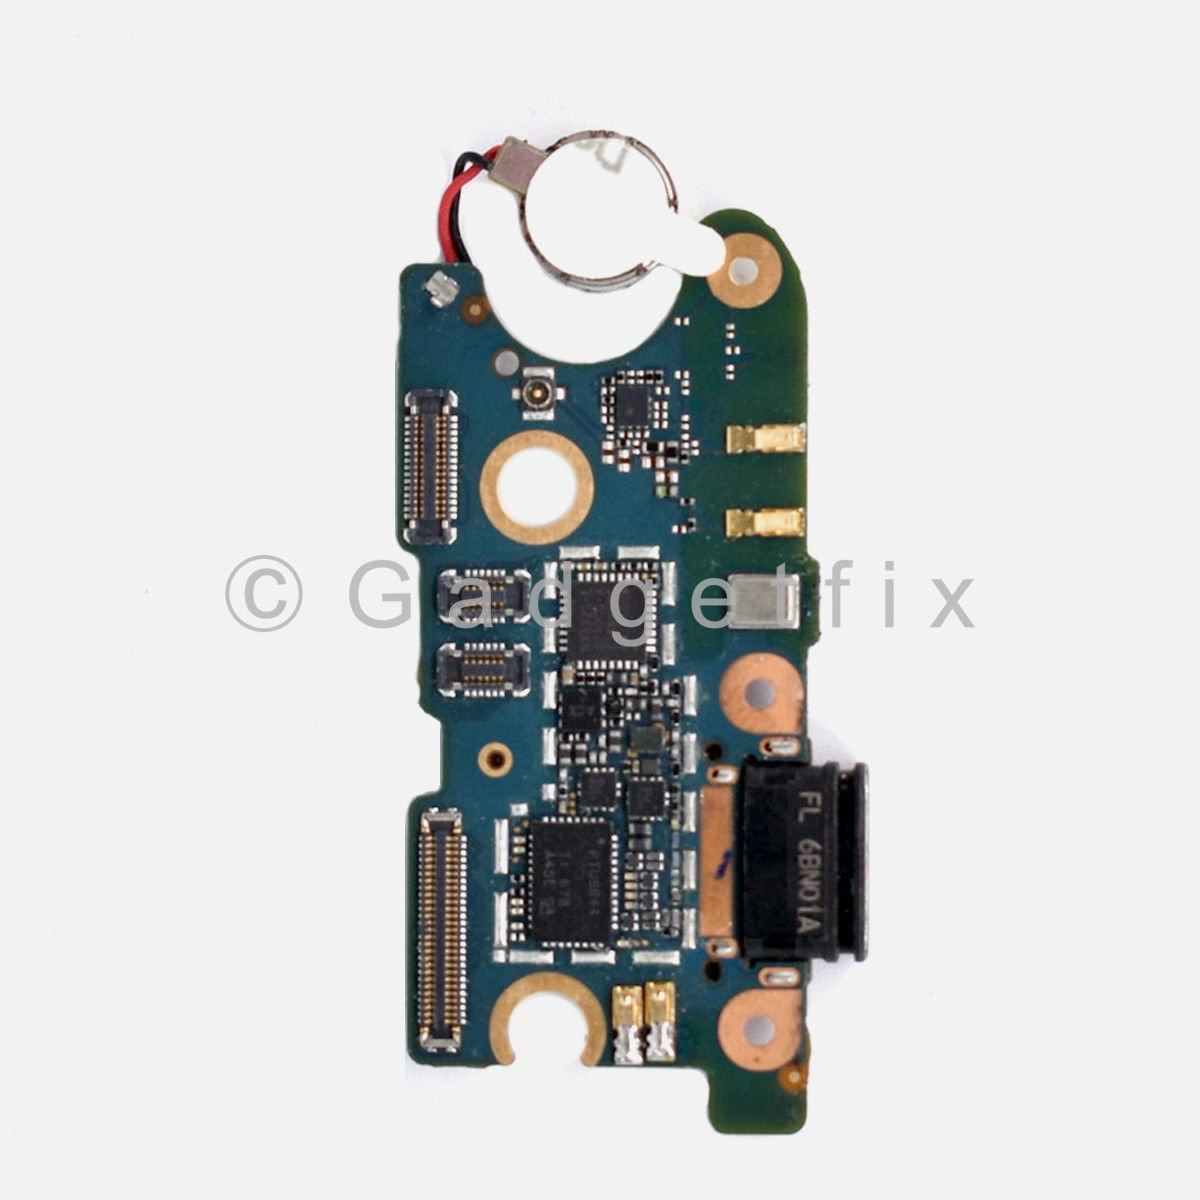 HTC U11 USB Charging Port Dock Connector Mic Vibrator Flex Cable Replacement